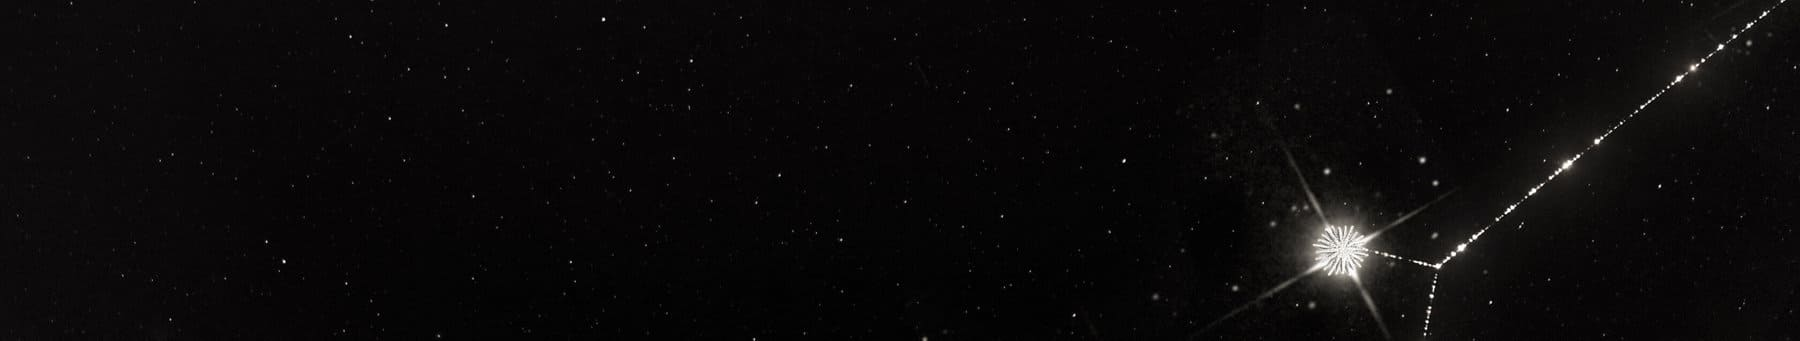 Black image with stars.